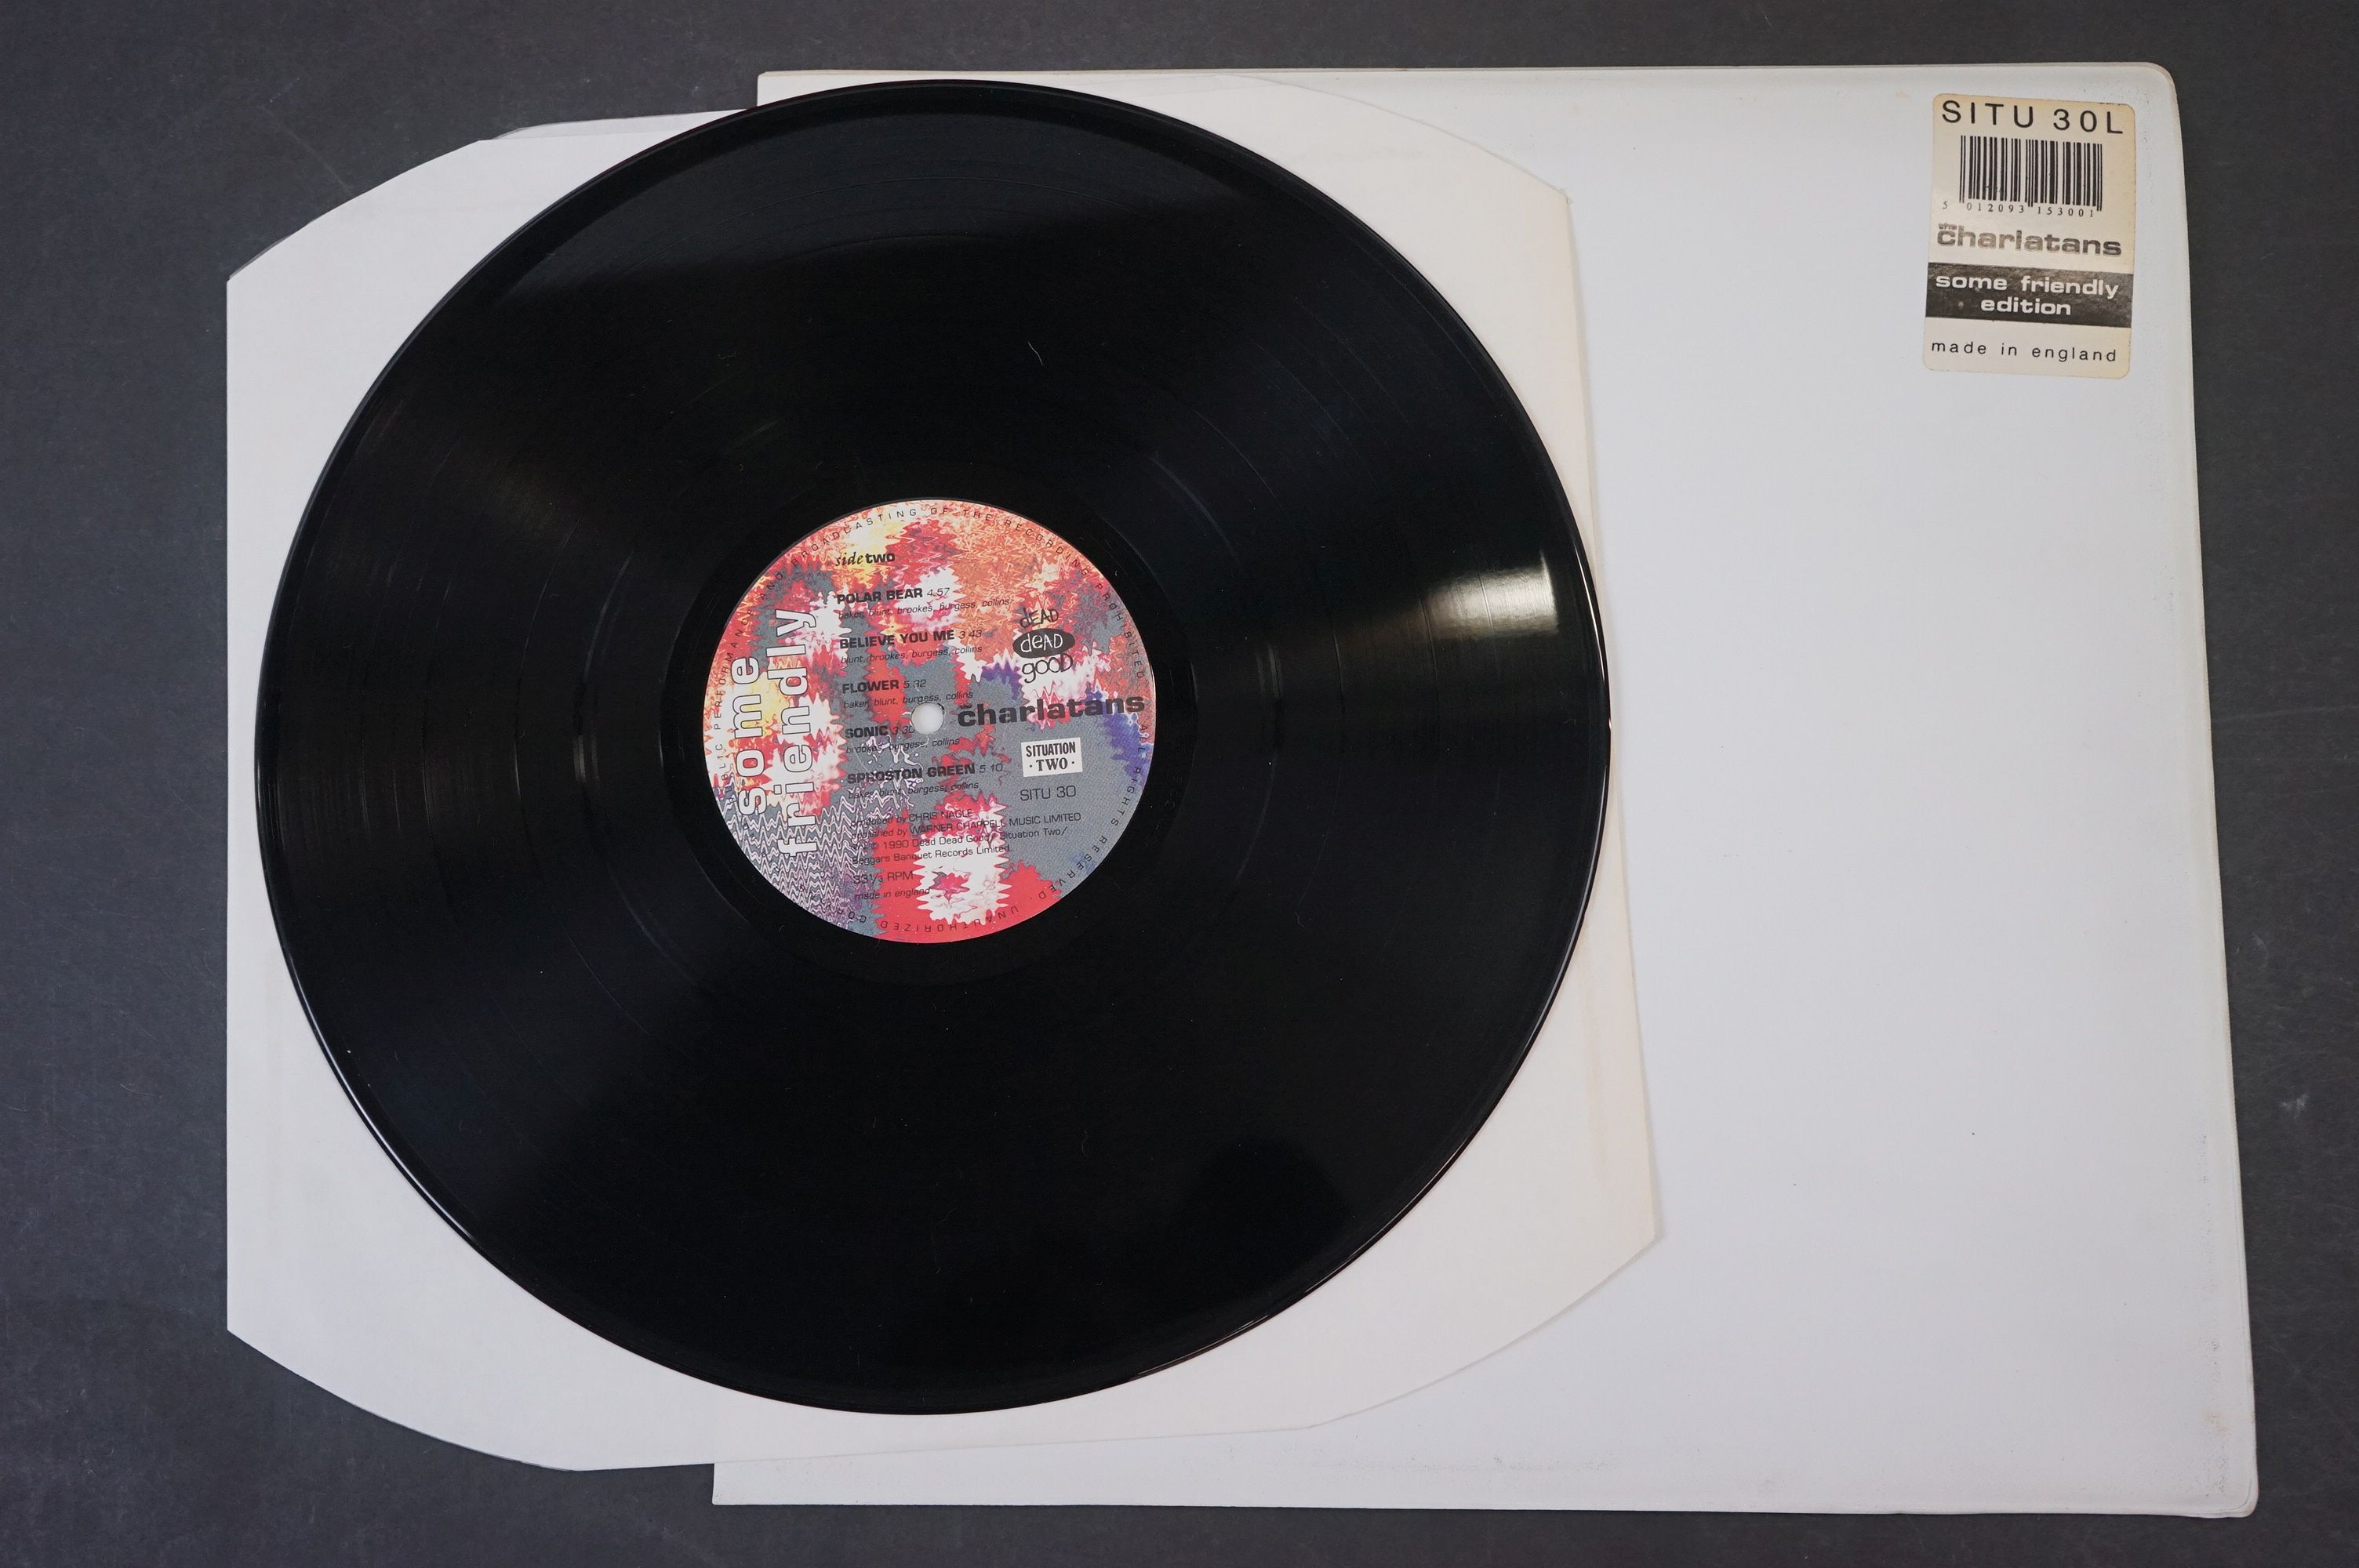 Vinyl - The Charlatans Some Friendly LP with td edn white sleeve, with inner sleeve, vinyl ex, - Image 3 of 9